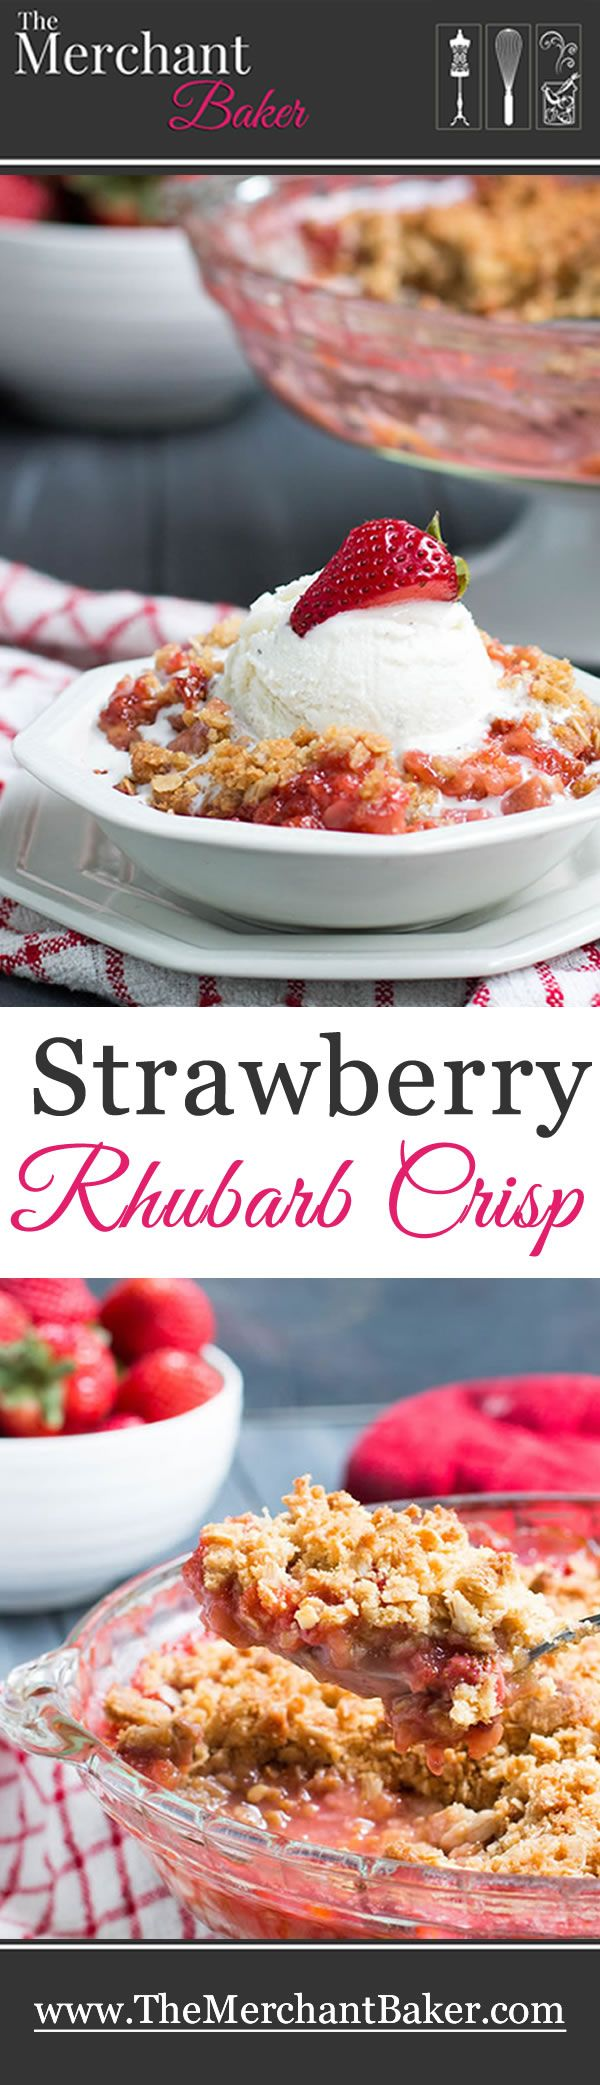 Strawberry Rhubarb Crisp. Fresh strawberries and tart rhubarb are topped with a sweet, buttery, crisp oatmeal topping for a delicious, easy to make dessert!